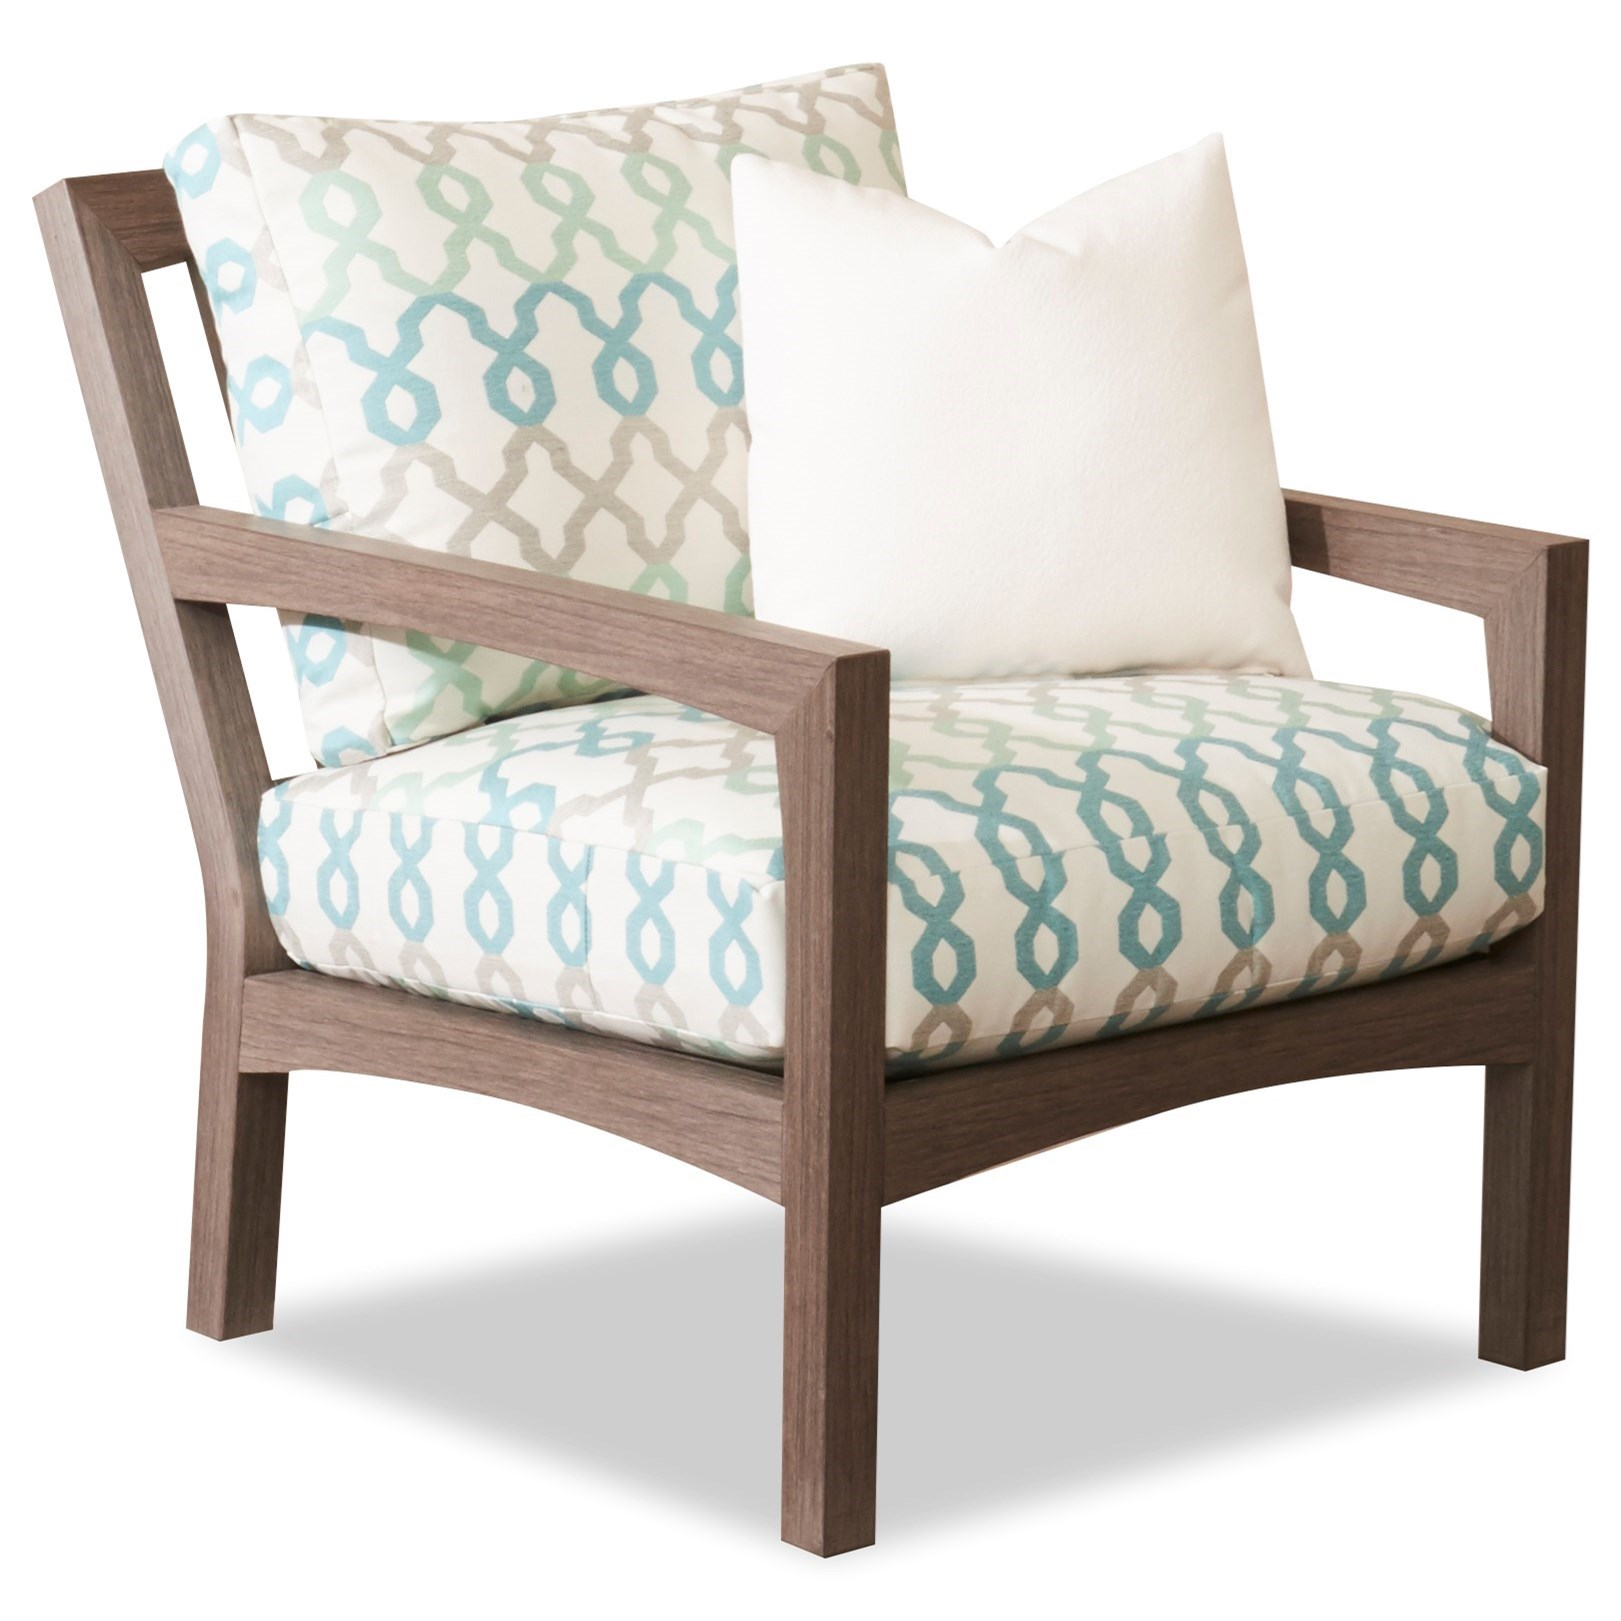 Outdoor Chair with Drainable Cushion